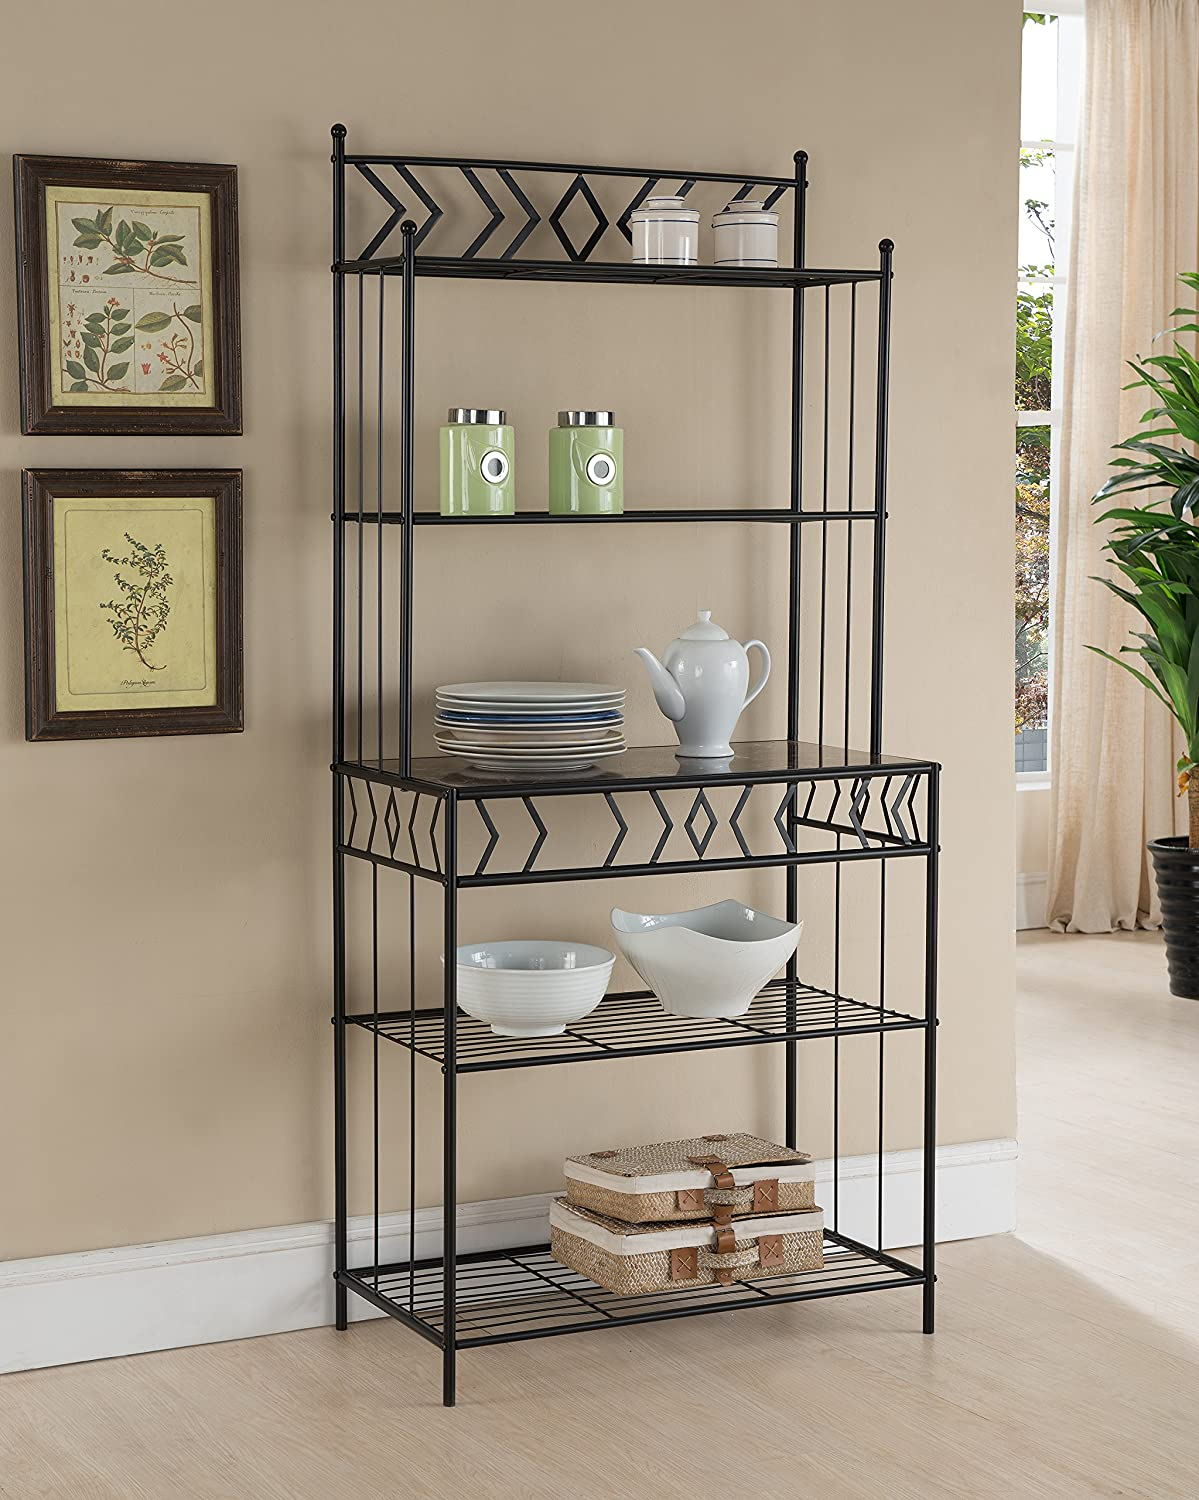 Kings Brand Furniture Metal With Marble Finish 5 Tier Bakers Rack, Black